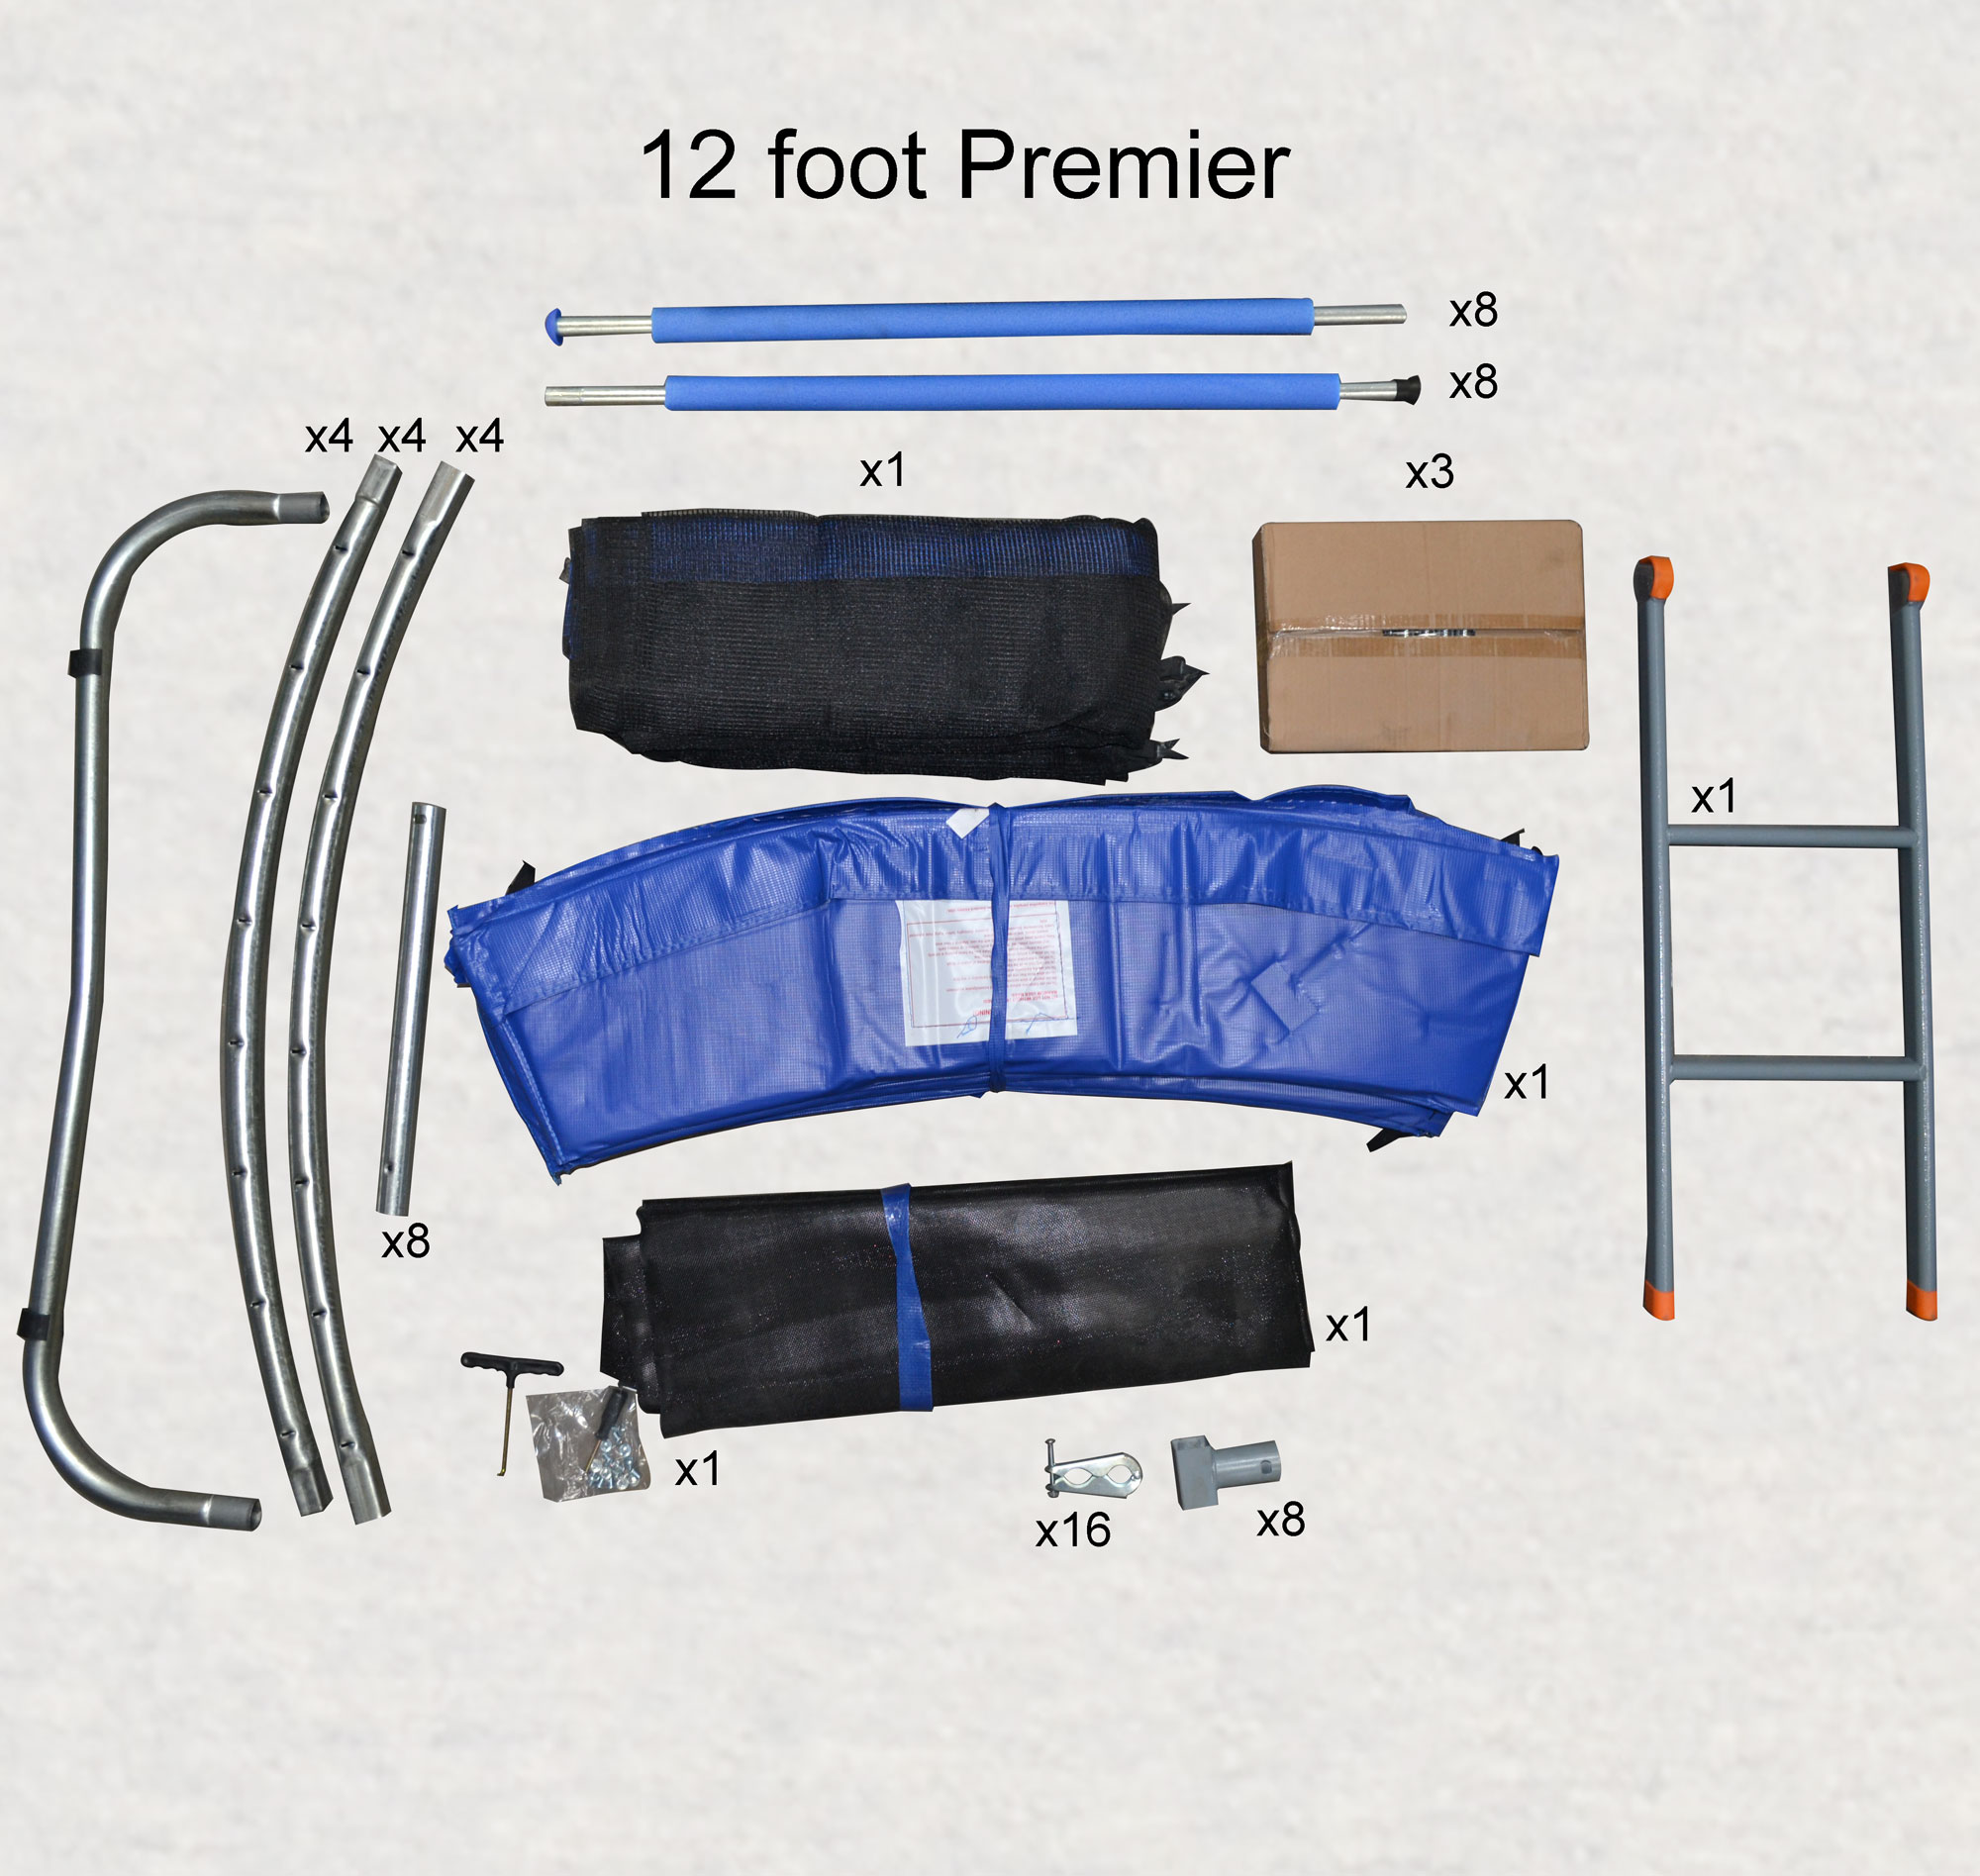 12ft Premier Trampoline Box Contents